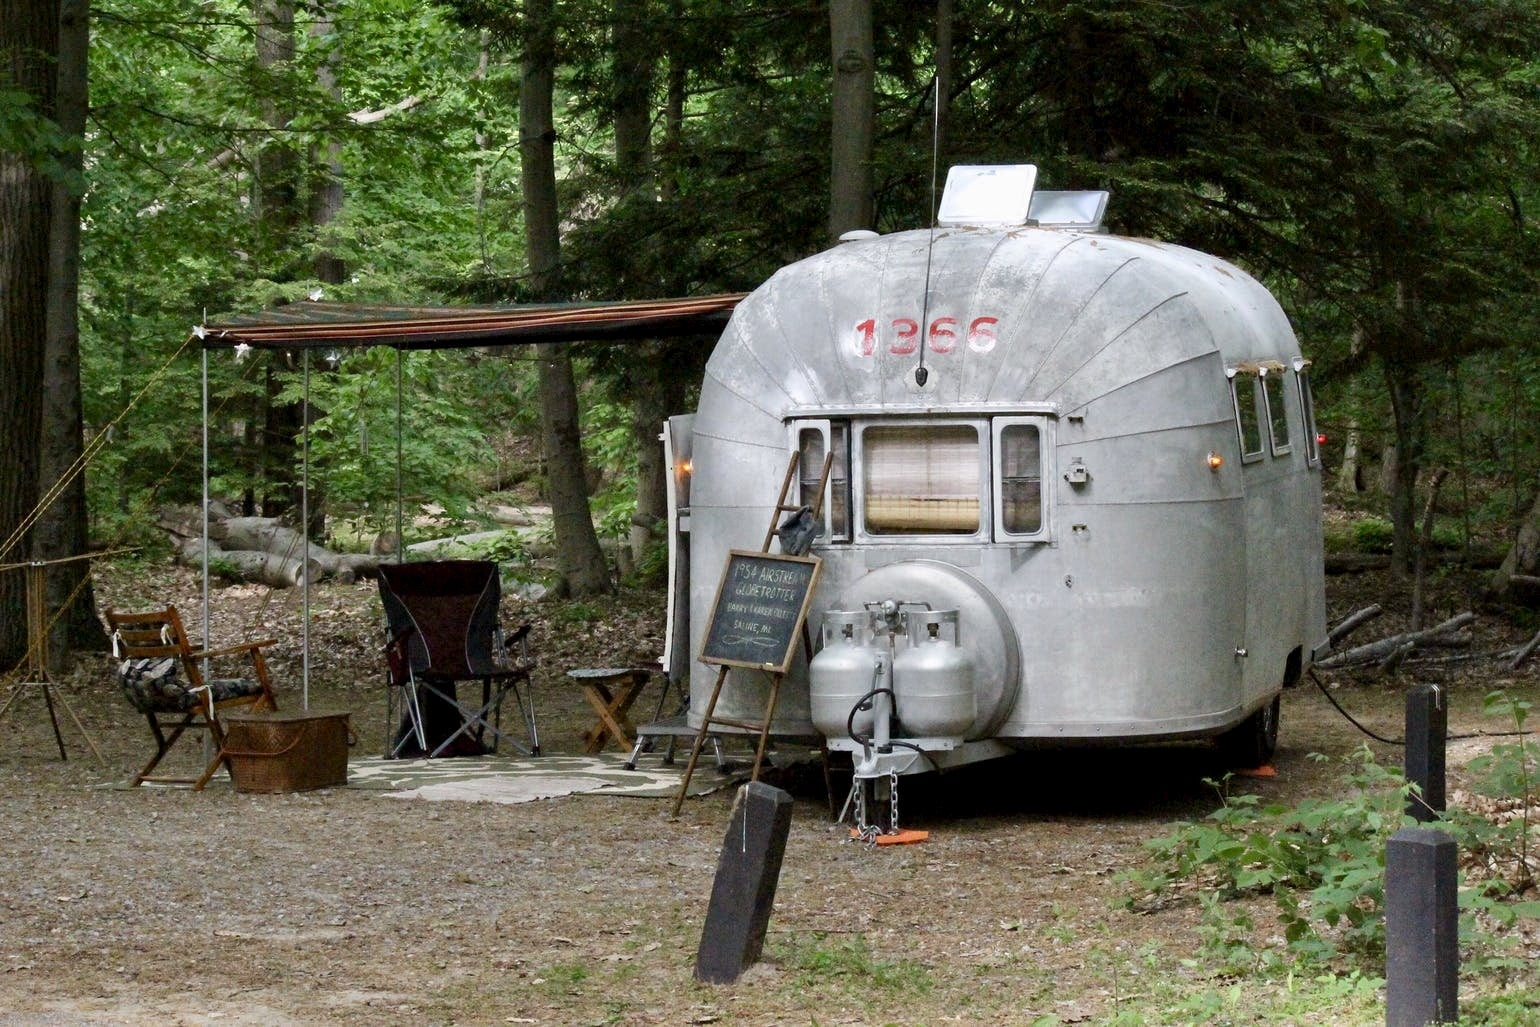 Vintage airstream set up i the woods of Southern Michigan.